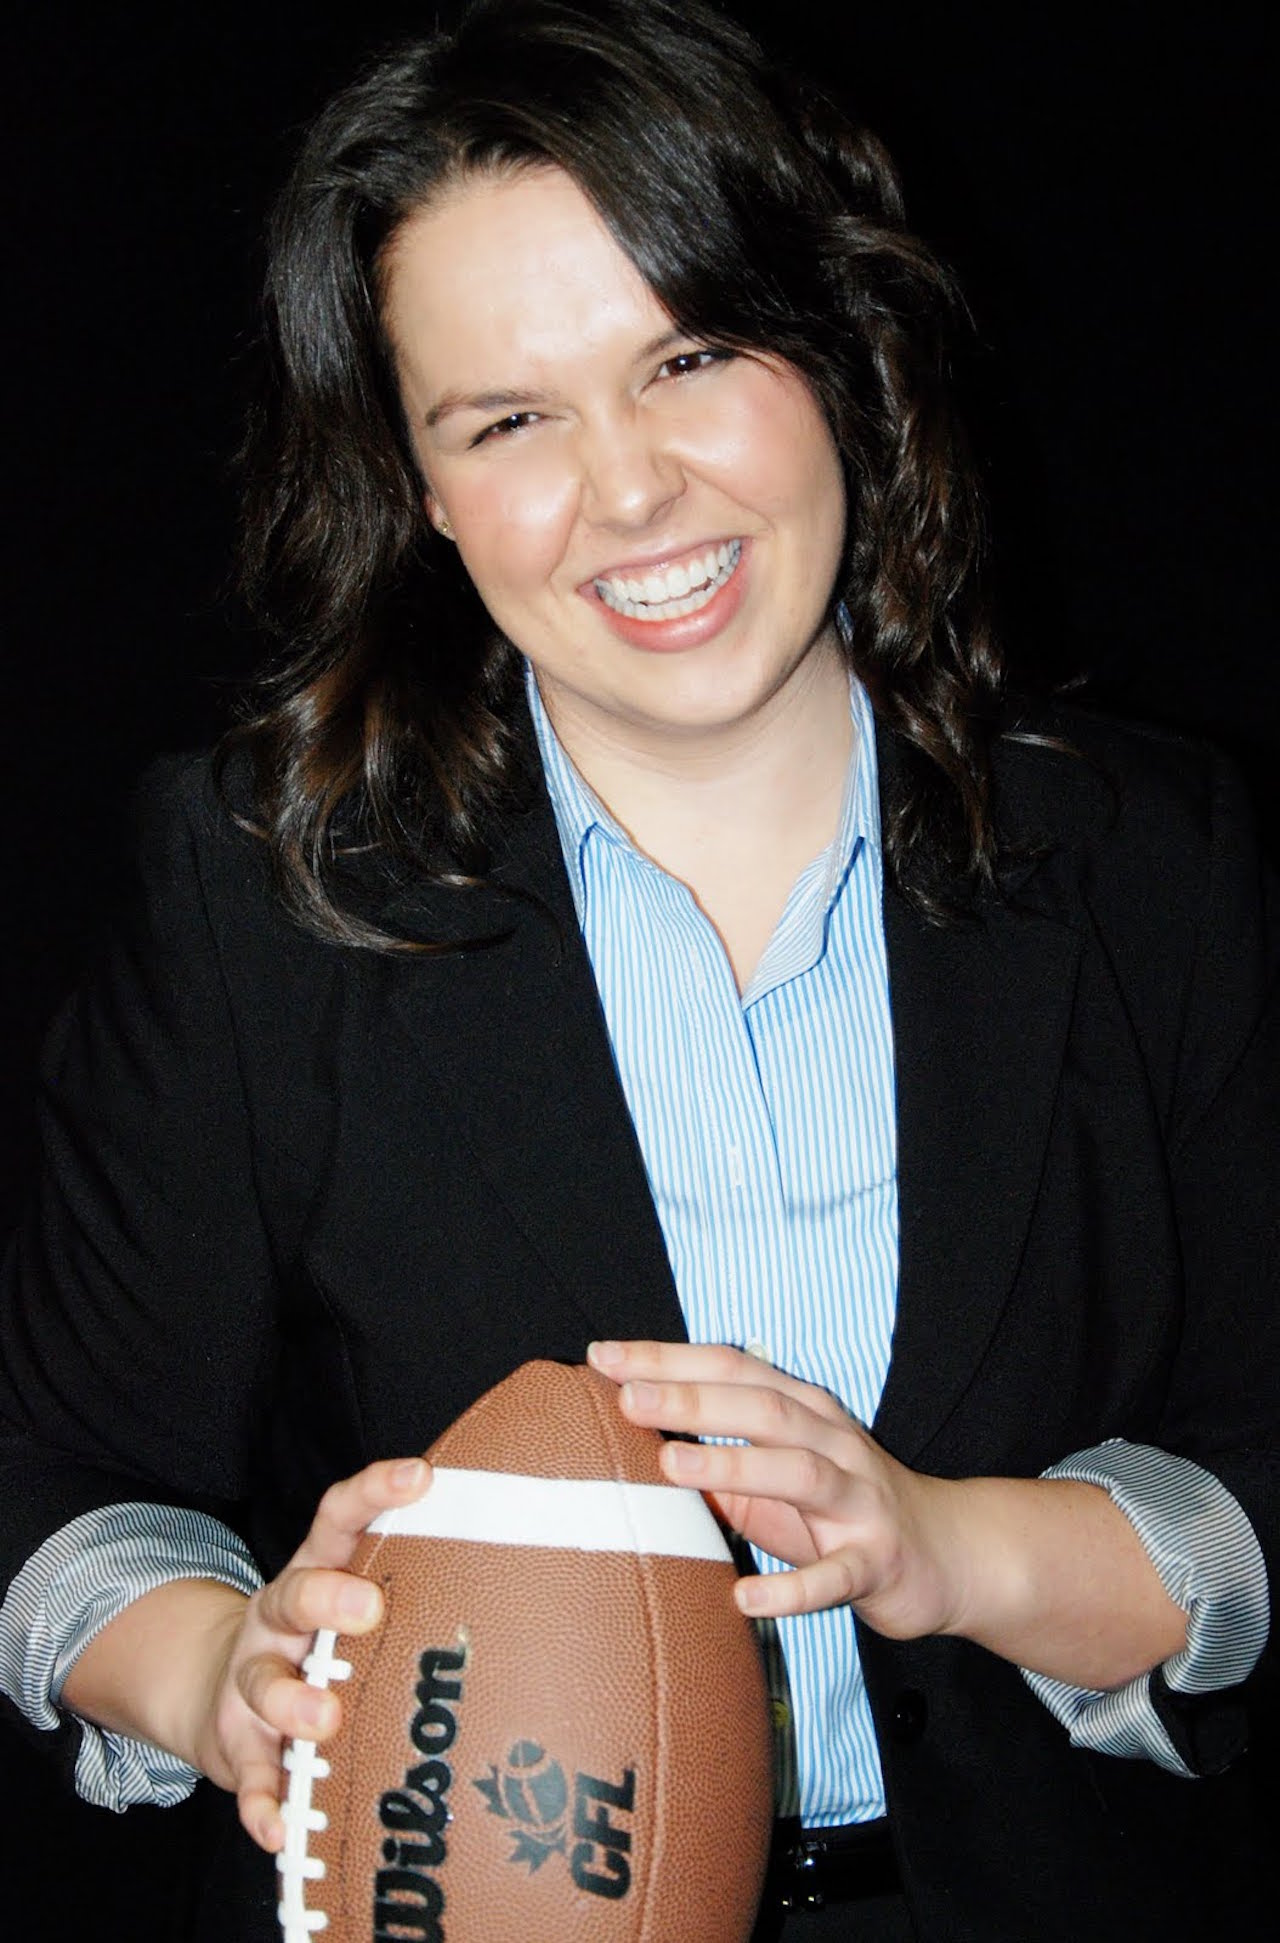 woman smiling with a football